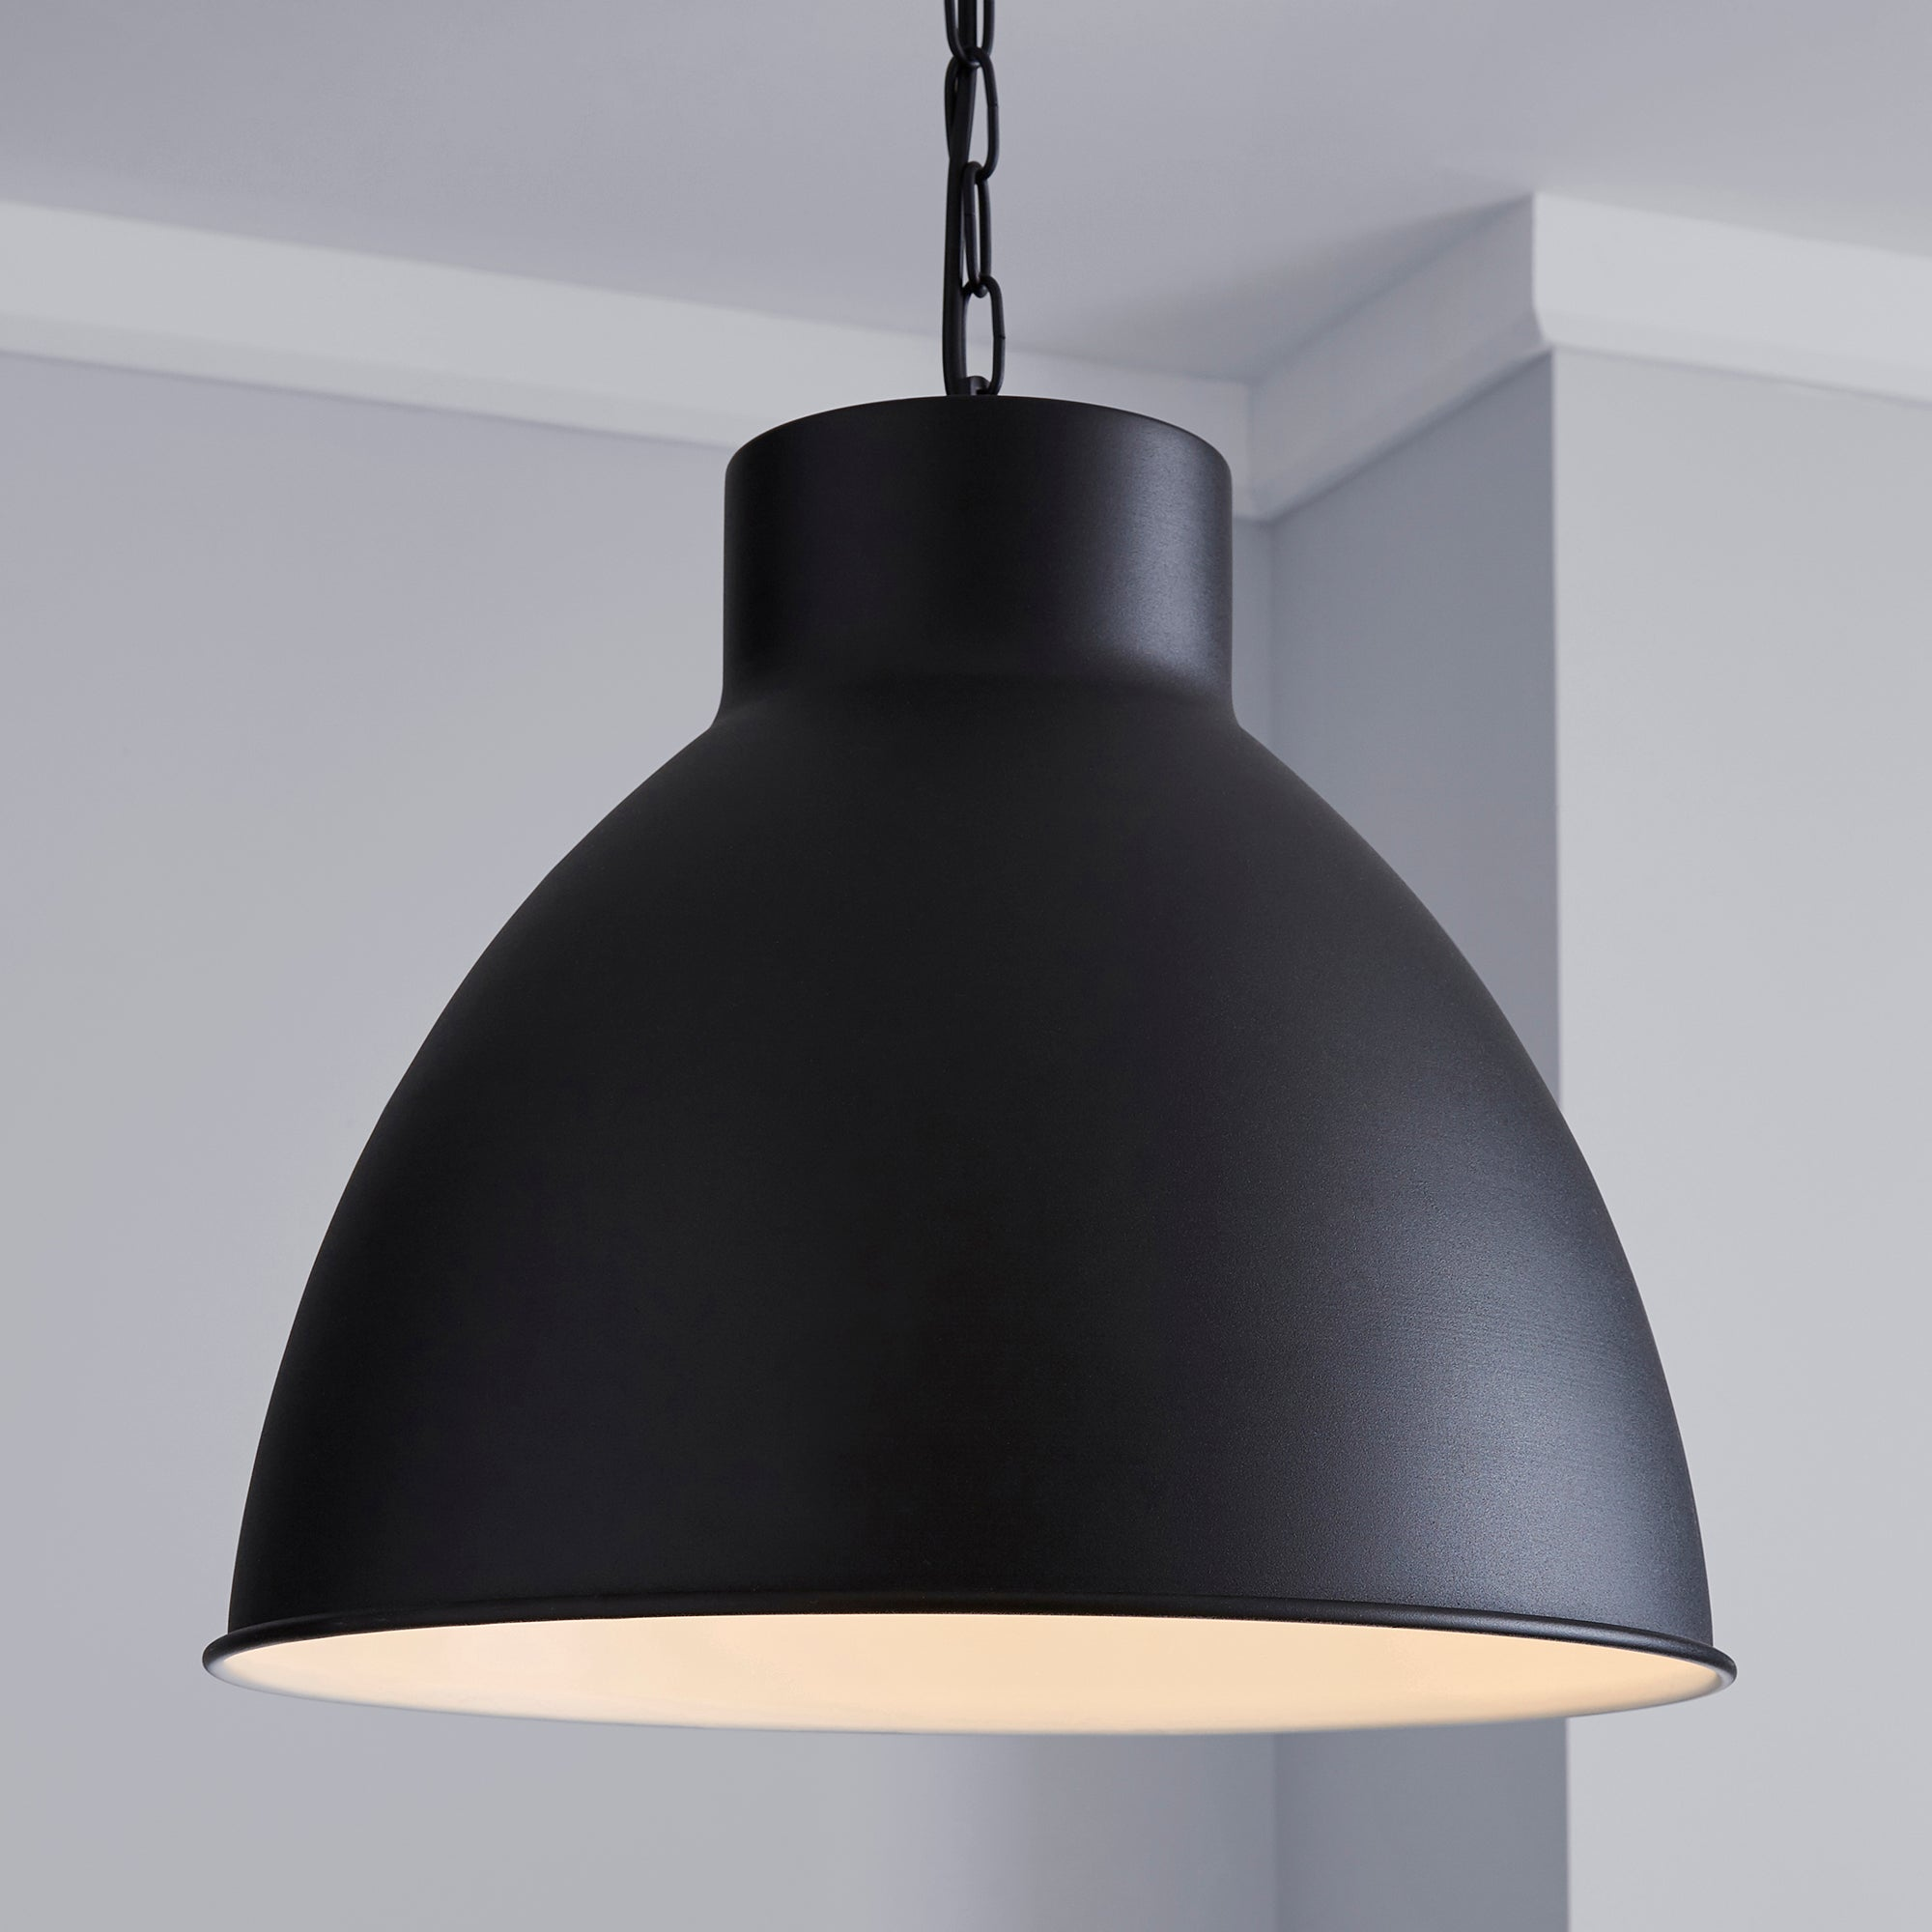 Dunelm Clea 1 Light Pendant Metal Dome Black Ceiling Fitting Black